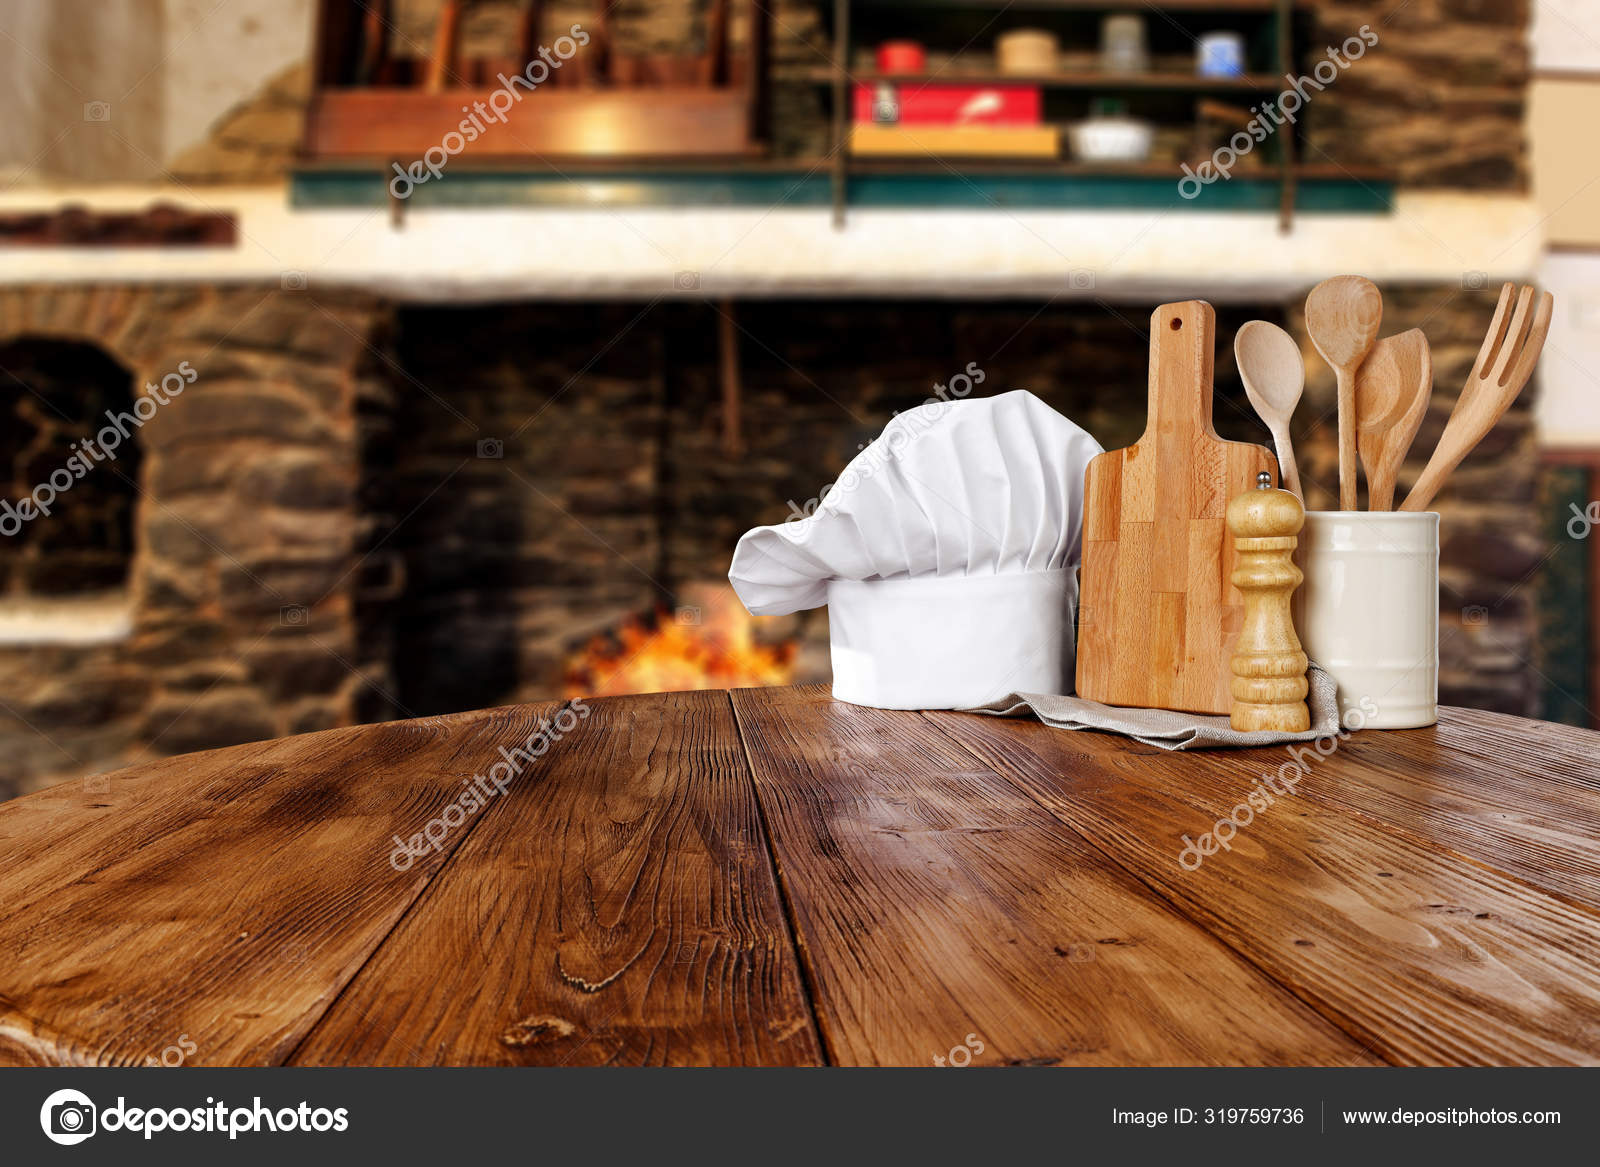 Kitchen tools on wooden table top with cosy warm home interior with old  fireplace stone wall background. Empty space for your decorations or ...